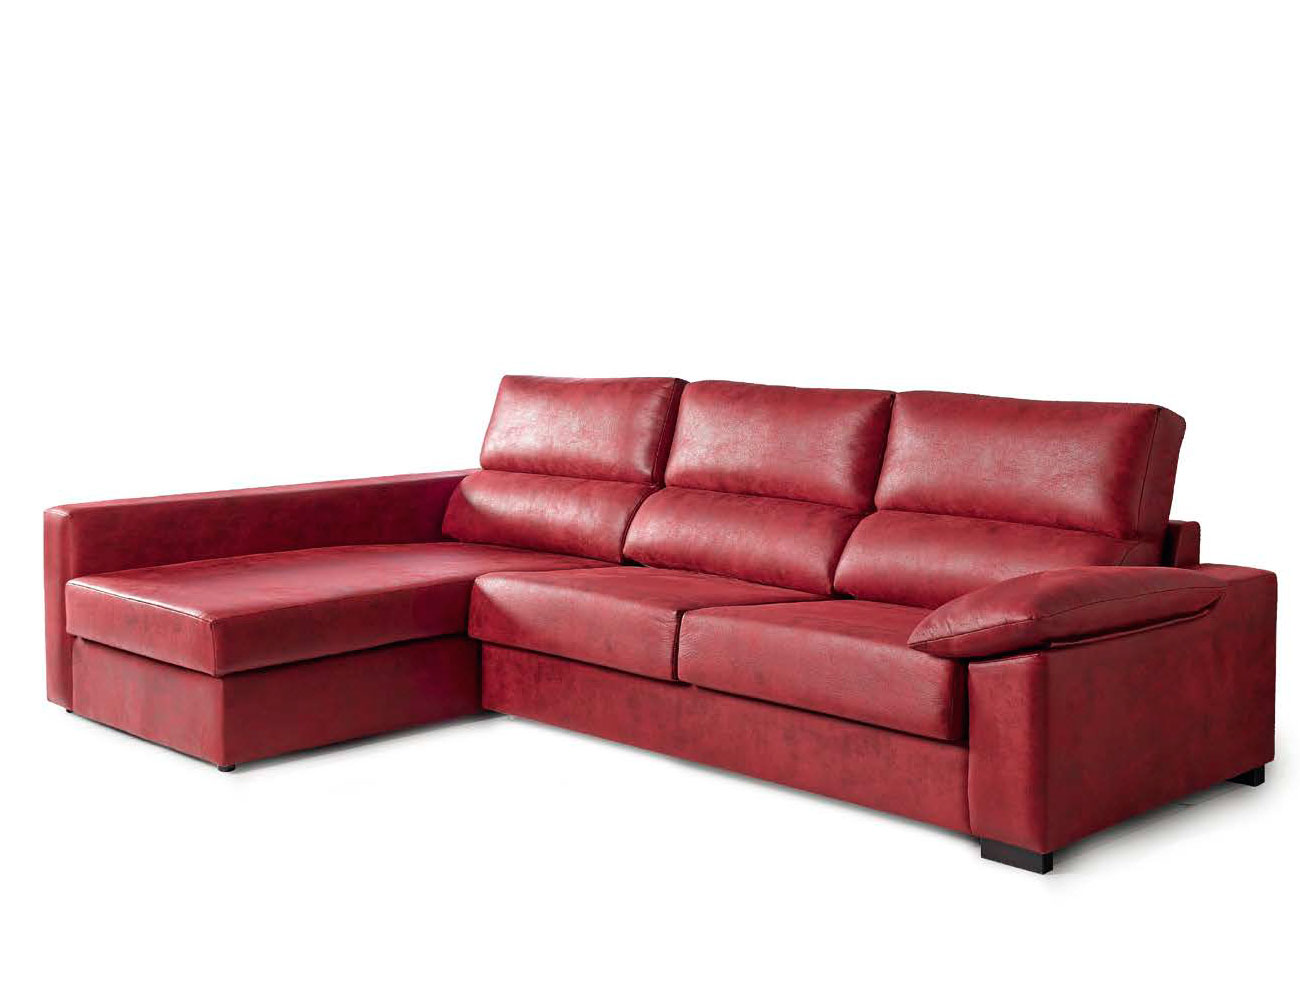 Sofa chaiselongue cama italiana leire rojo 31